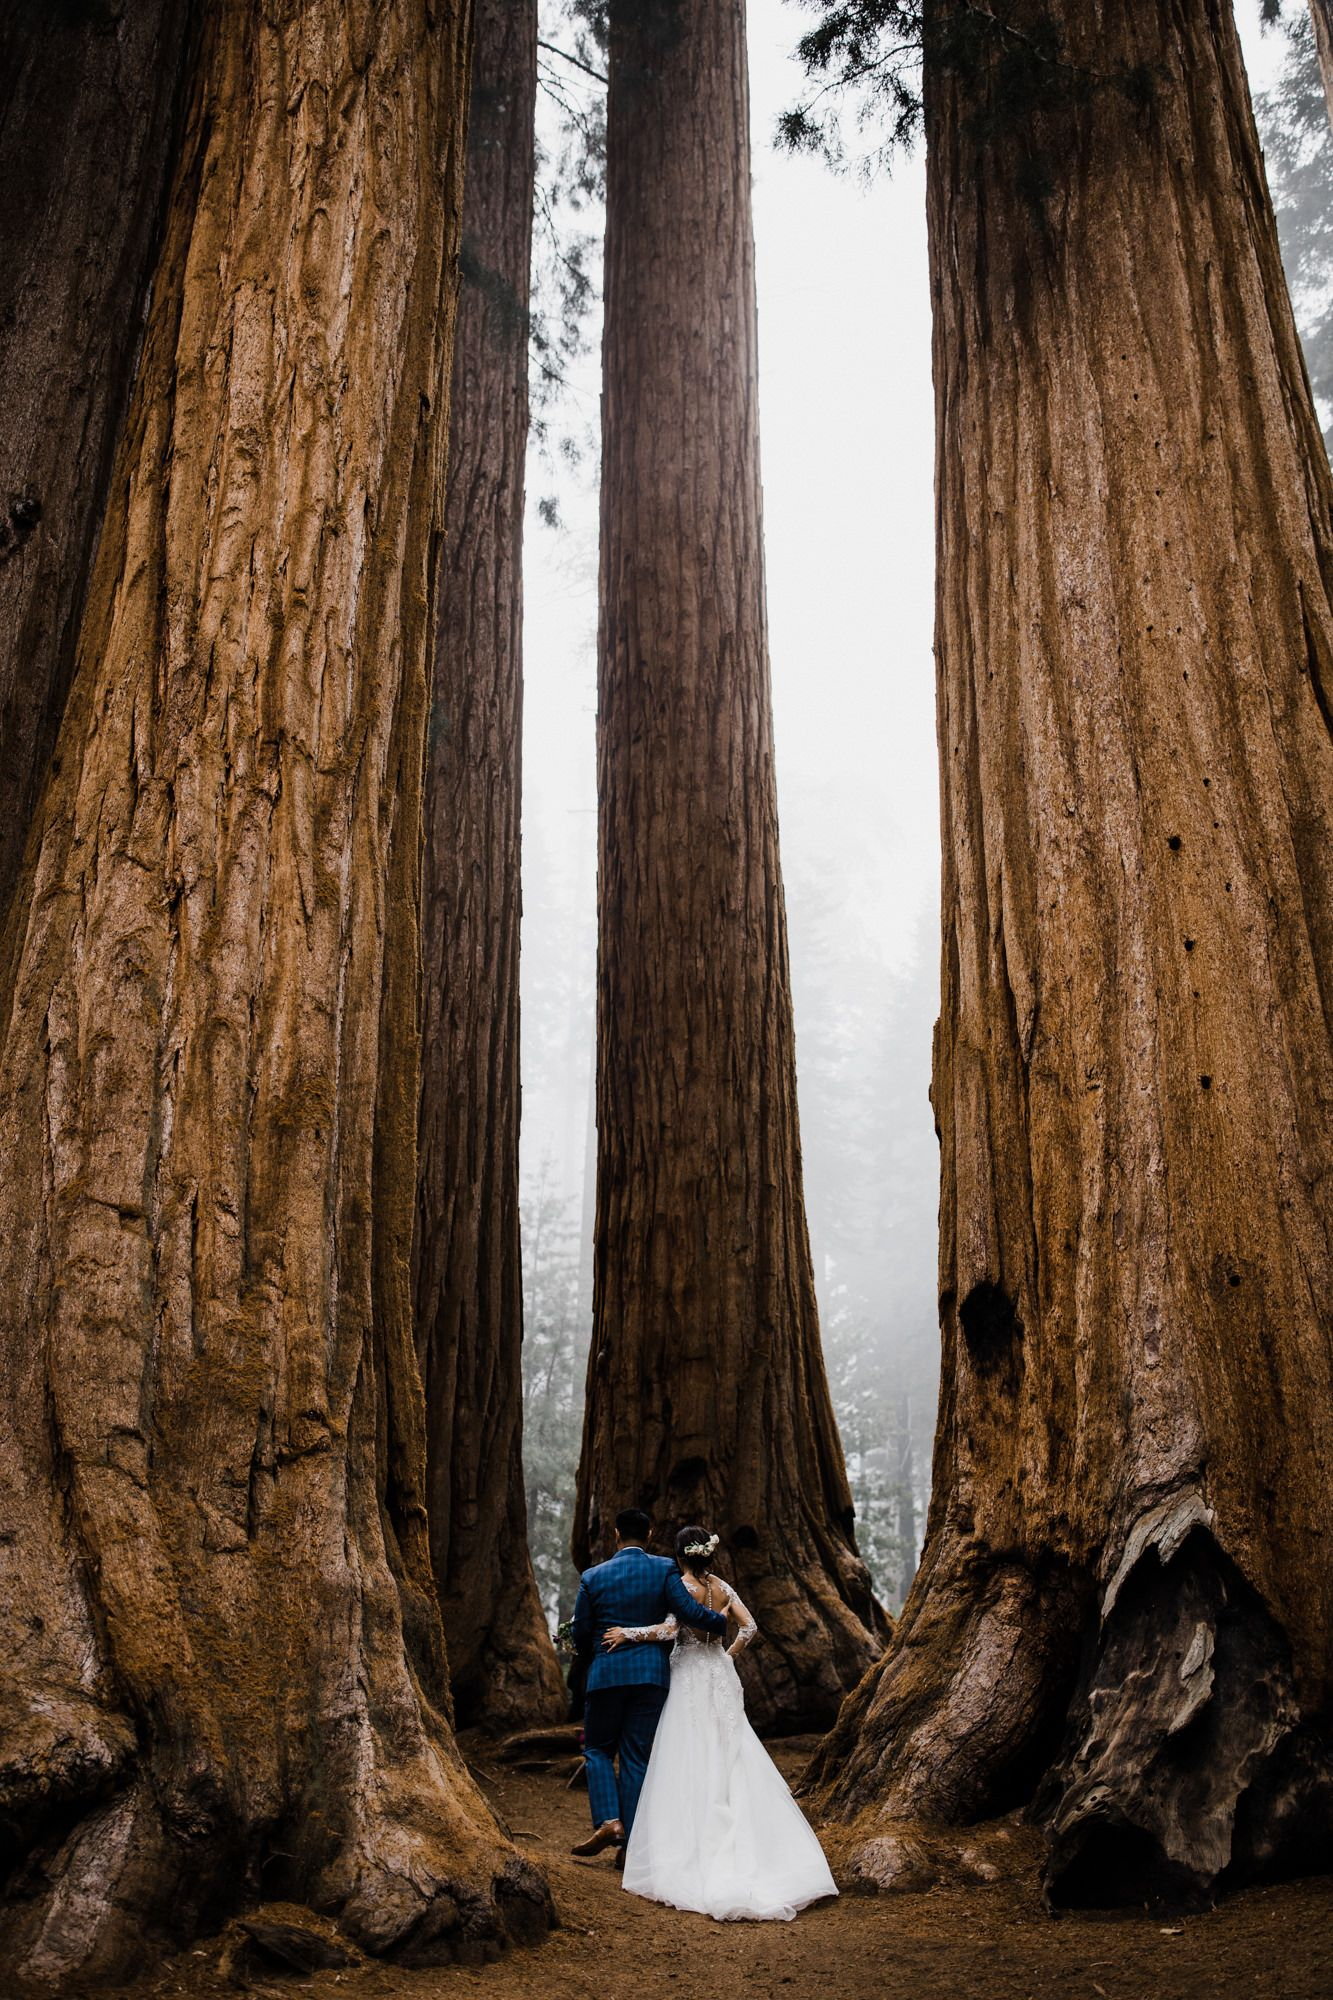 Sequoia National Park Foggy Intimate Wedding Day In A Giant Forest California Adventure Elopement Photographer The Hearnes Photography